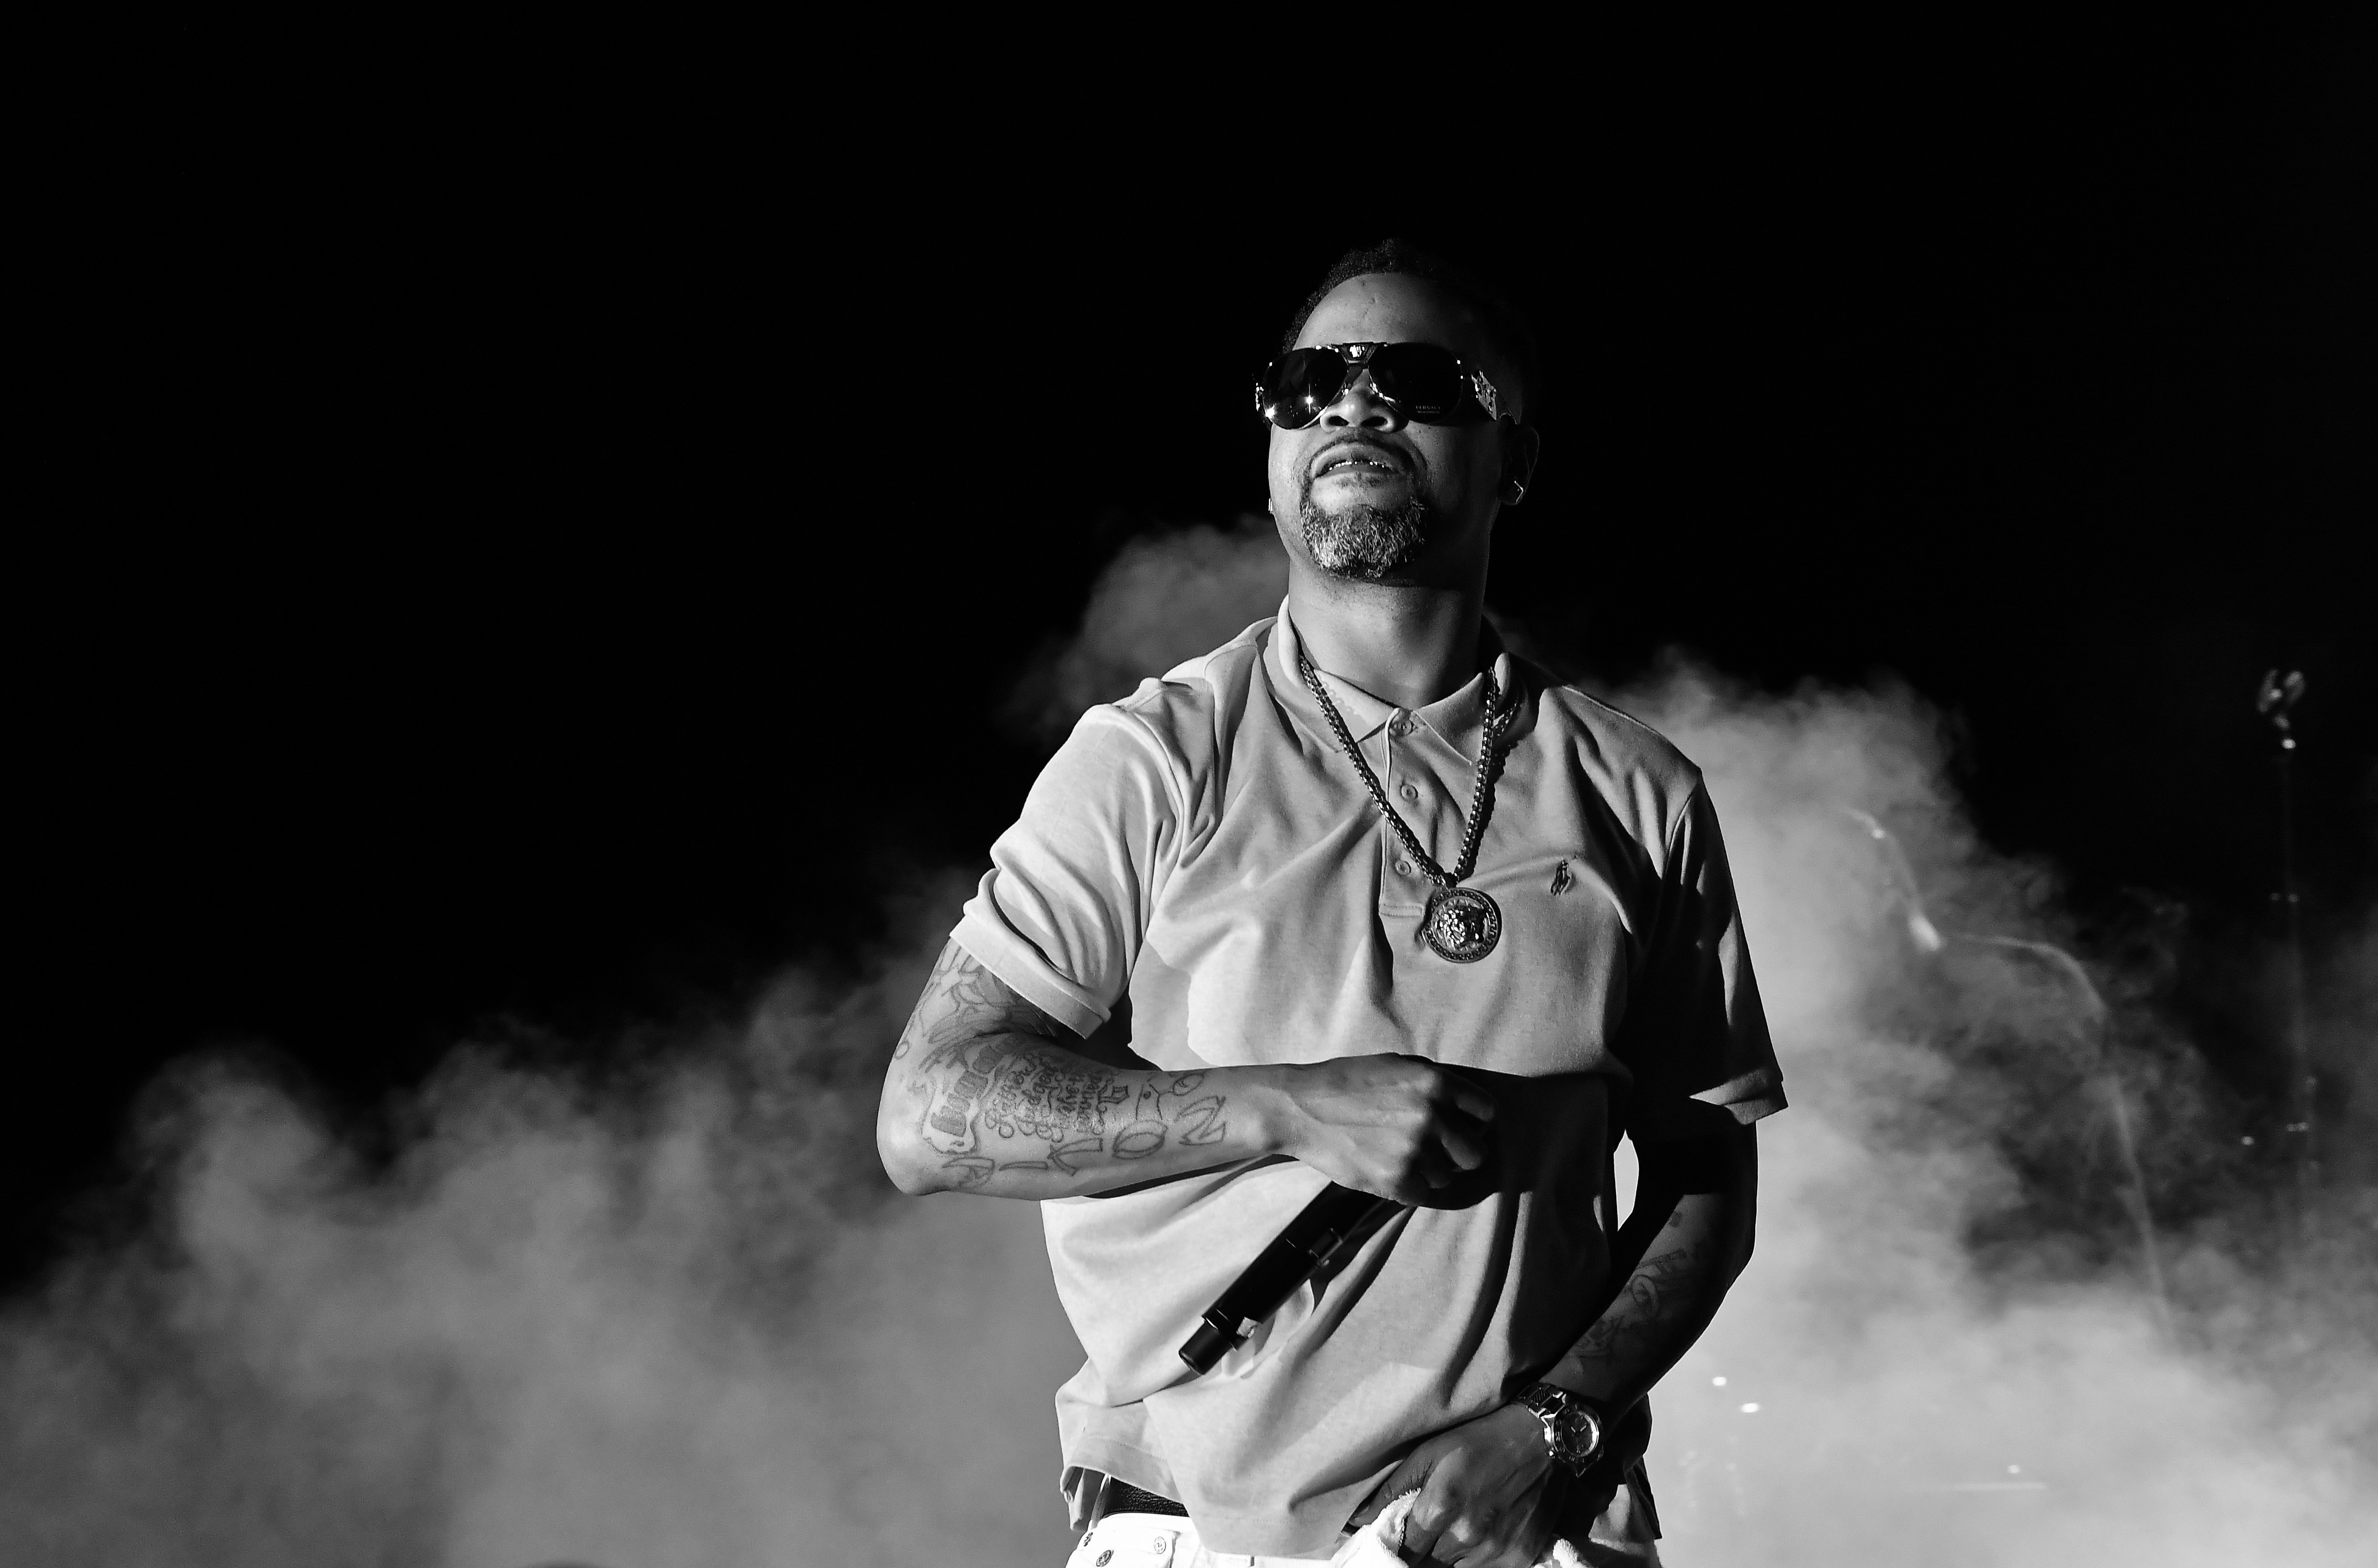 Juvenile Boosts Vaccination Efforts With 'Vax That Thang Up'